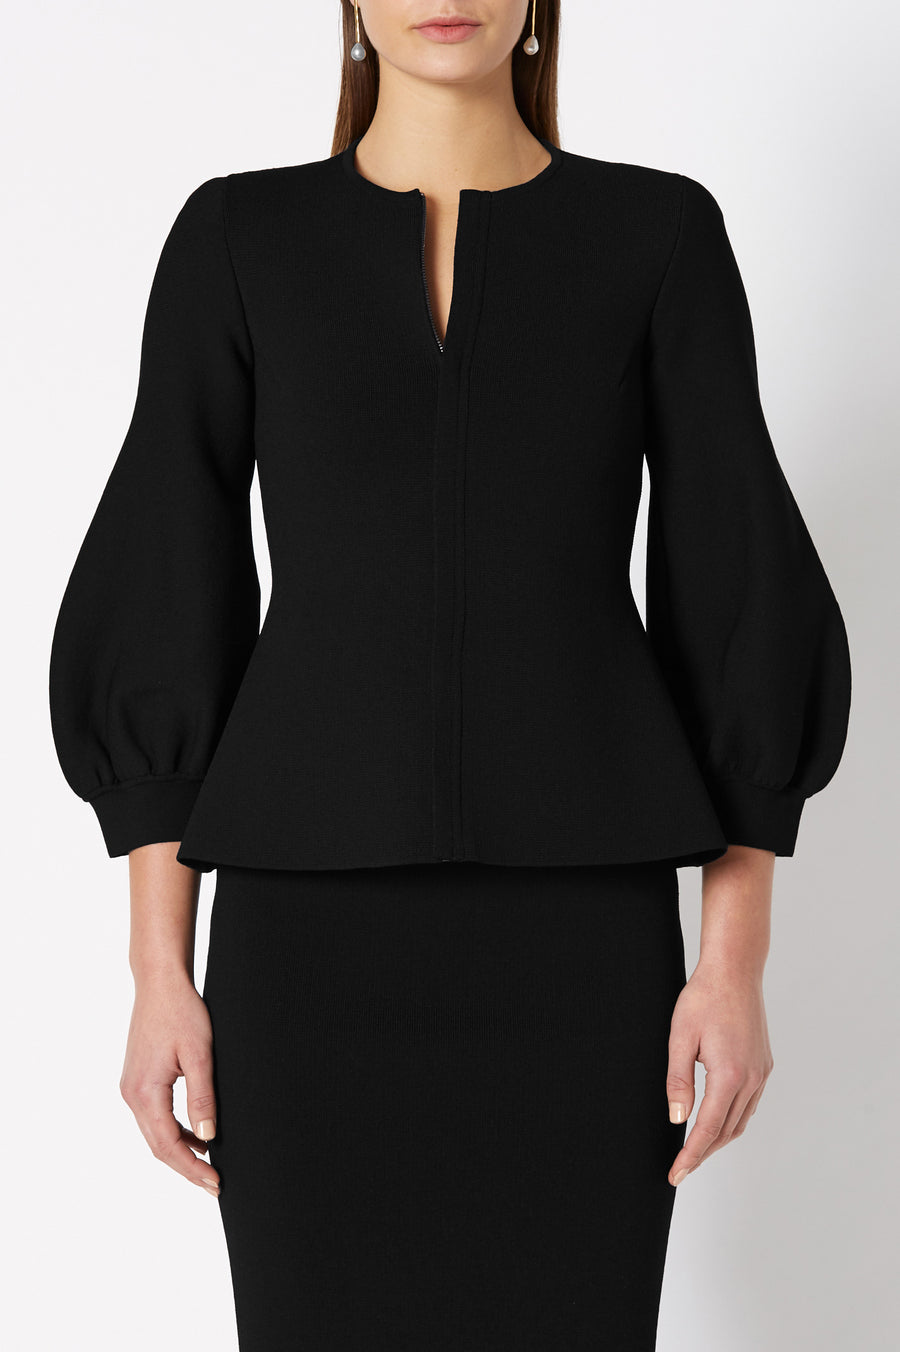 CREPE KNIT COCOON SLEEVE JACKET BLACK